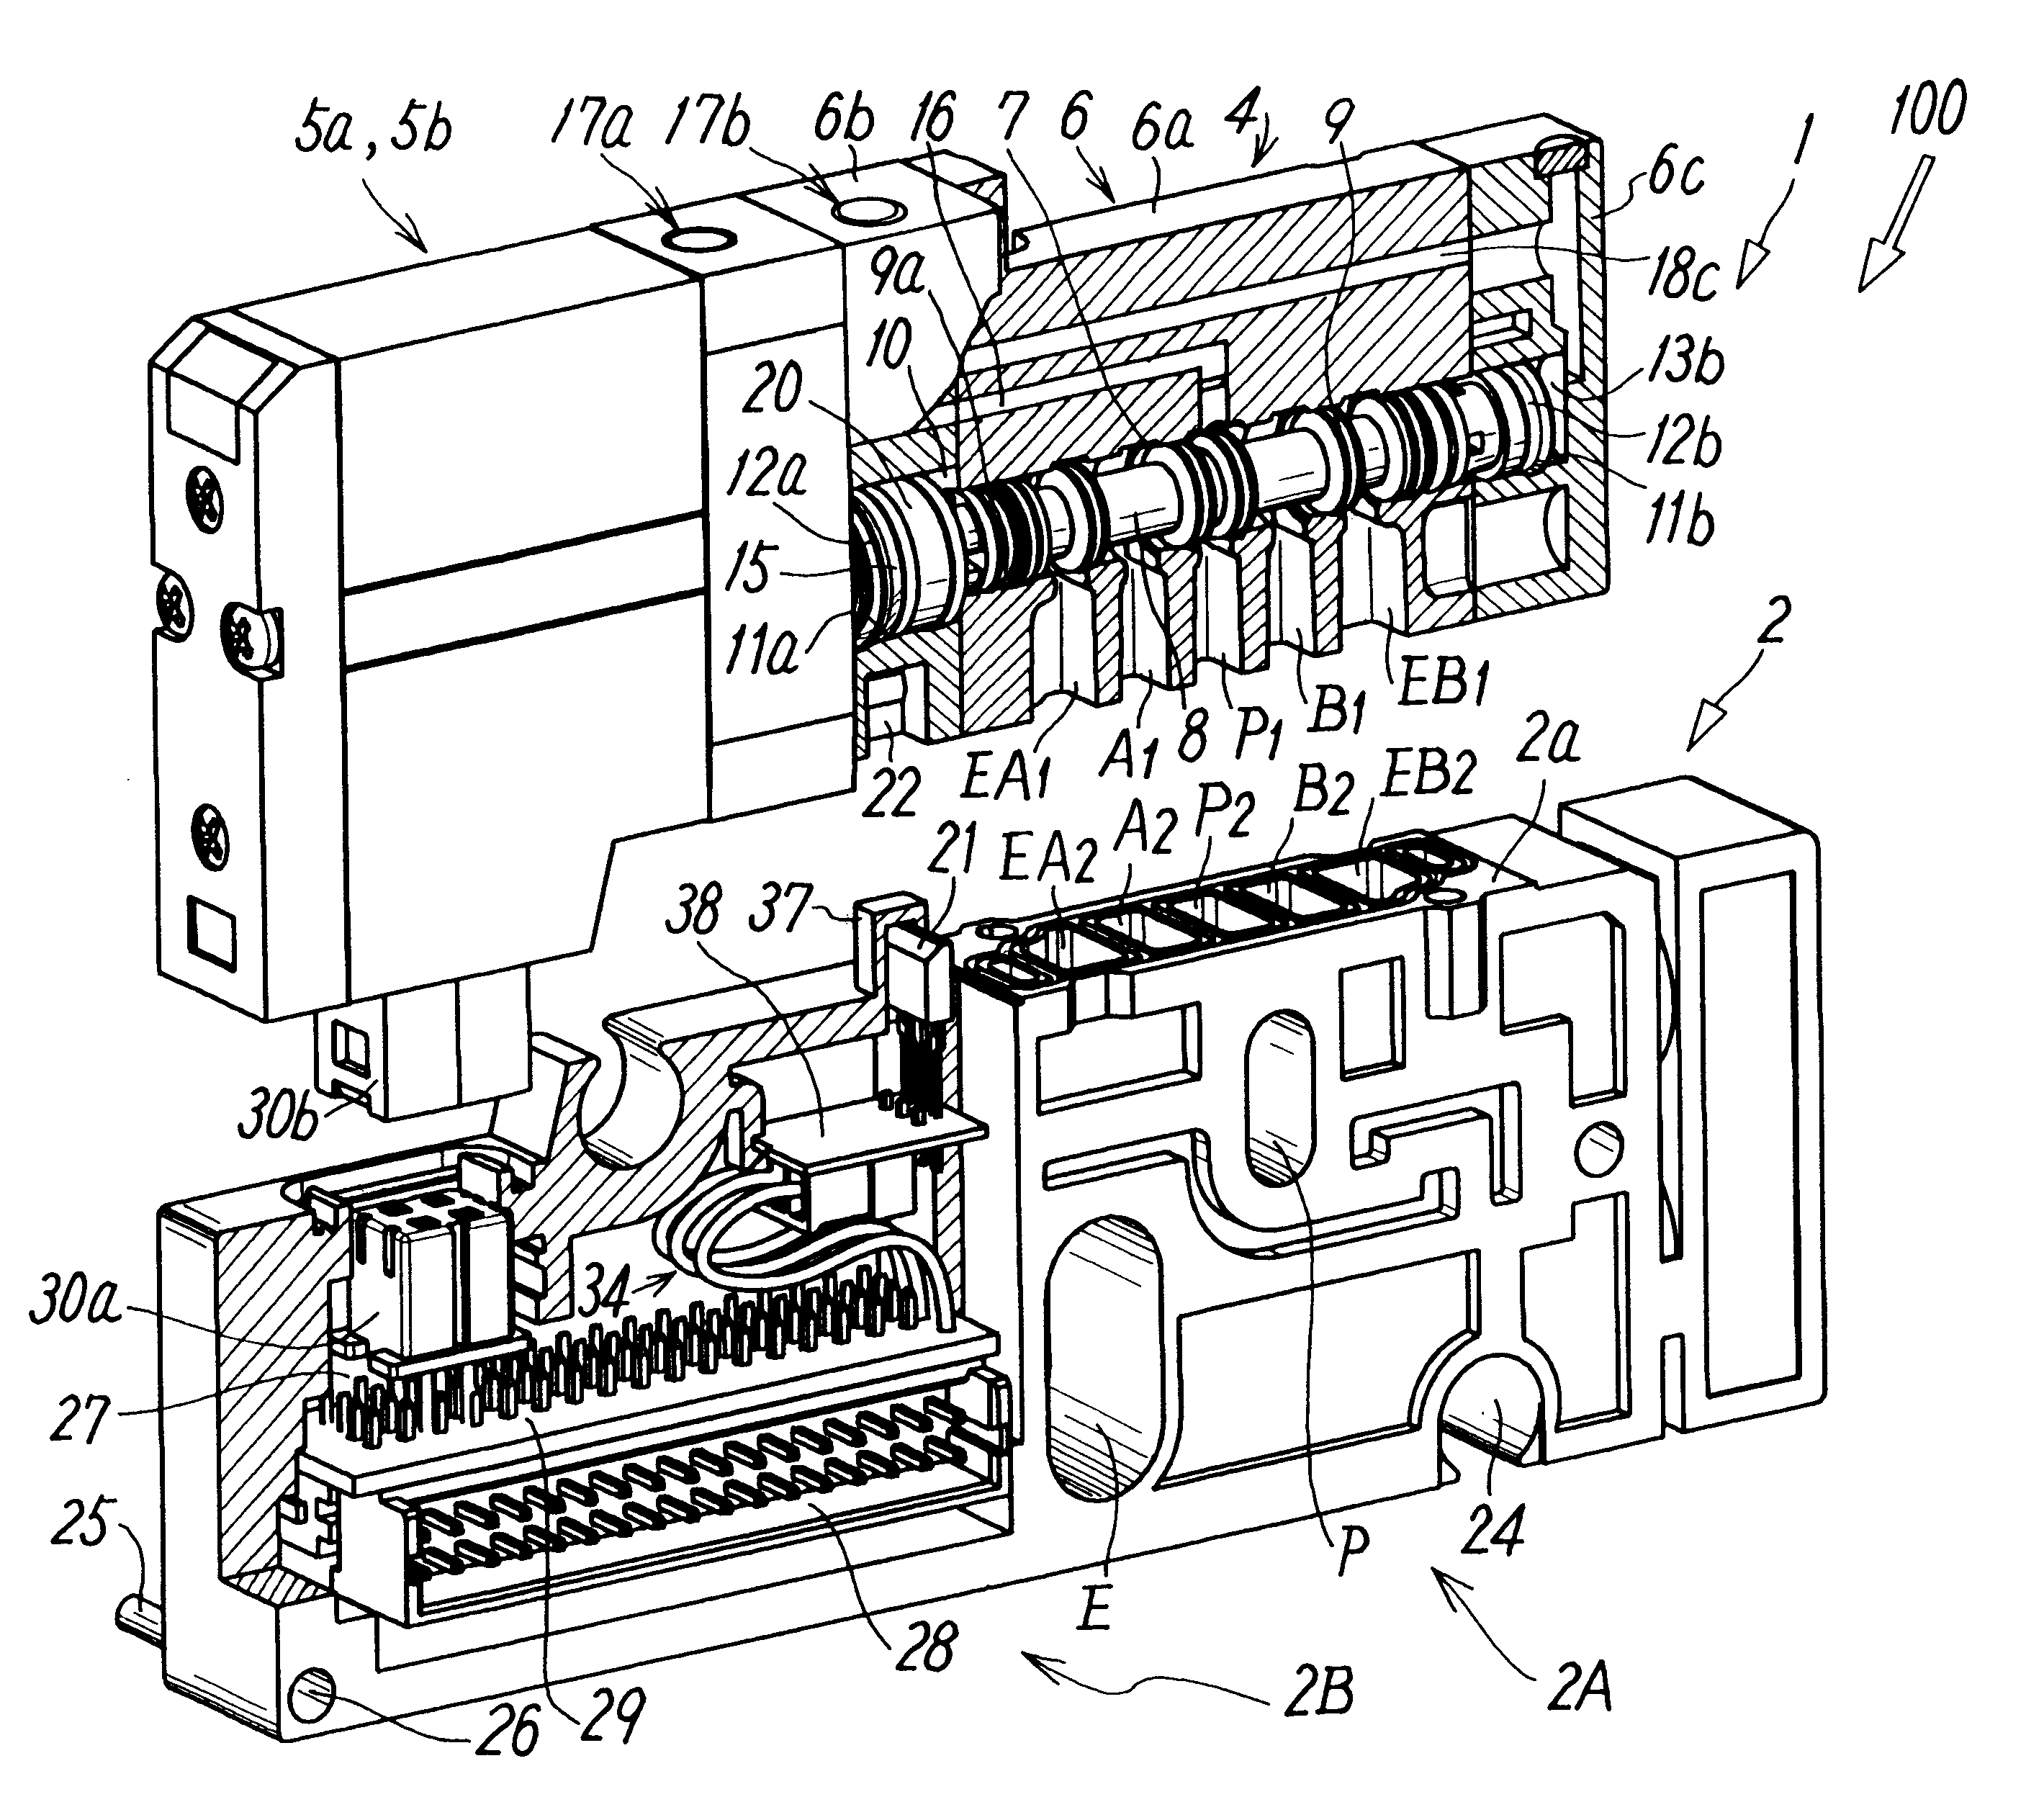 Patent Us6520202 Manifold Valve Having Position Detecting Function Smc Wiring Diagram Drawing